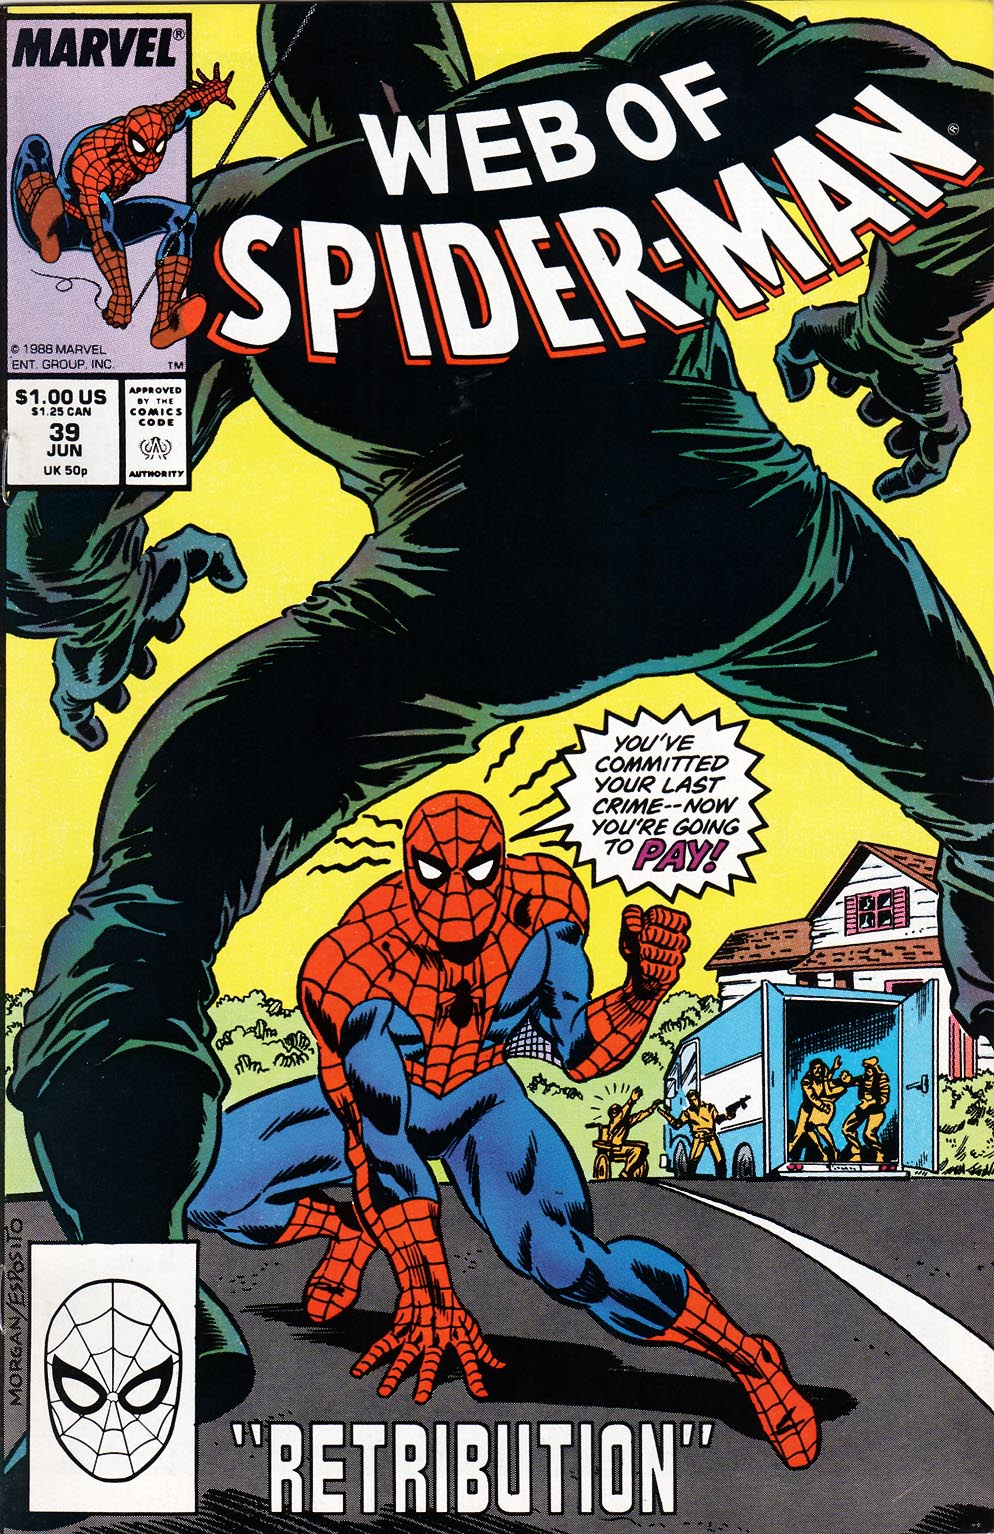 Web of Spider-Man (1985) 39 Page 1